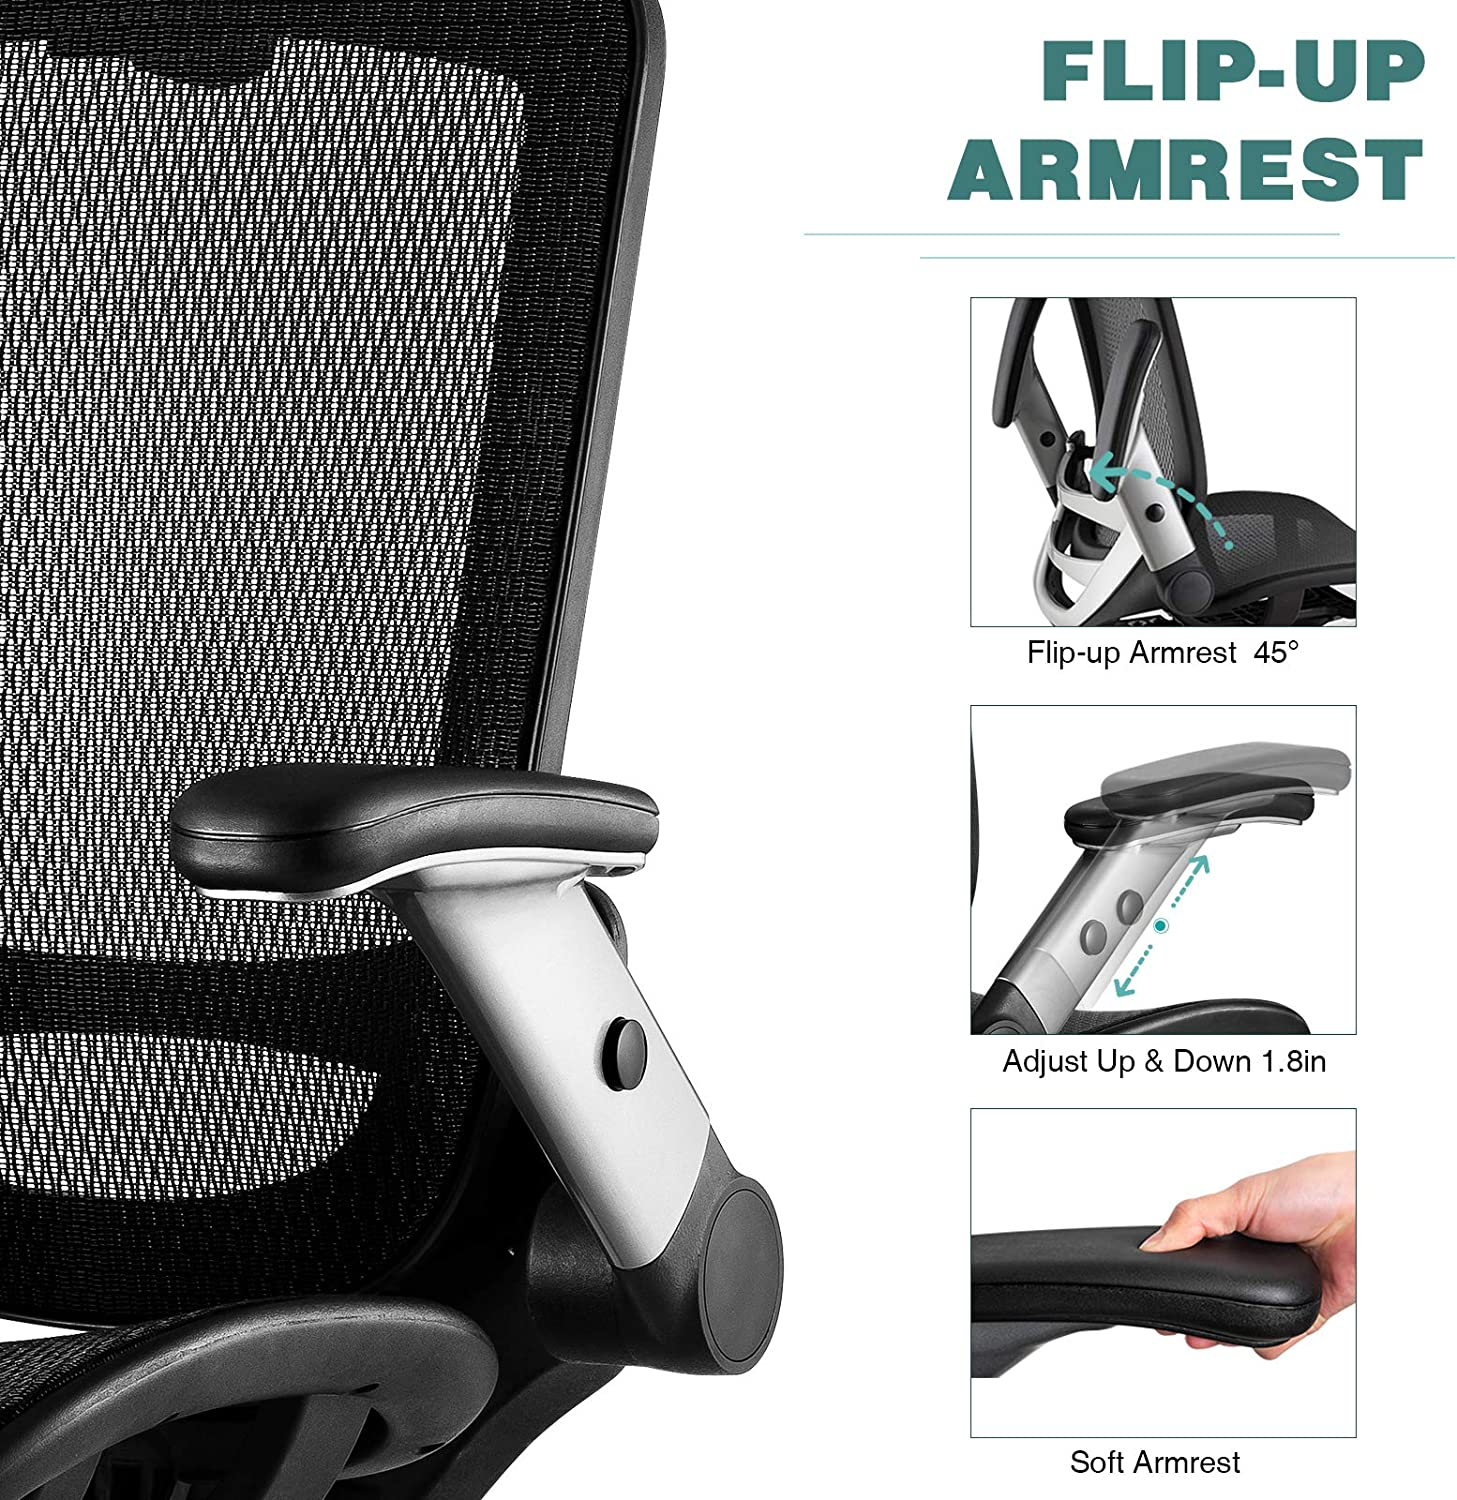 81yDJIrX14L. AC SL1500 - What Are The Best Office Chair For Lower Back Pain Under $300 - ChairPicks